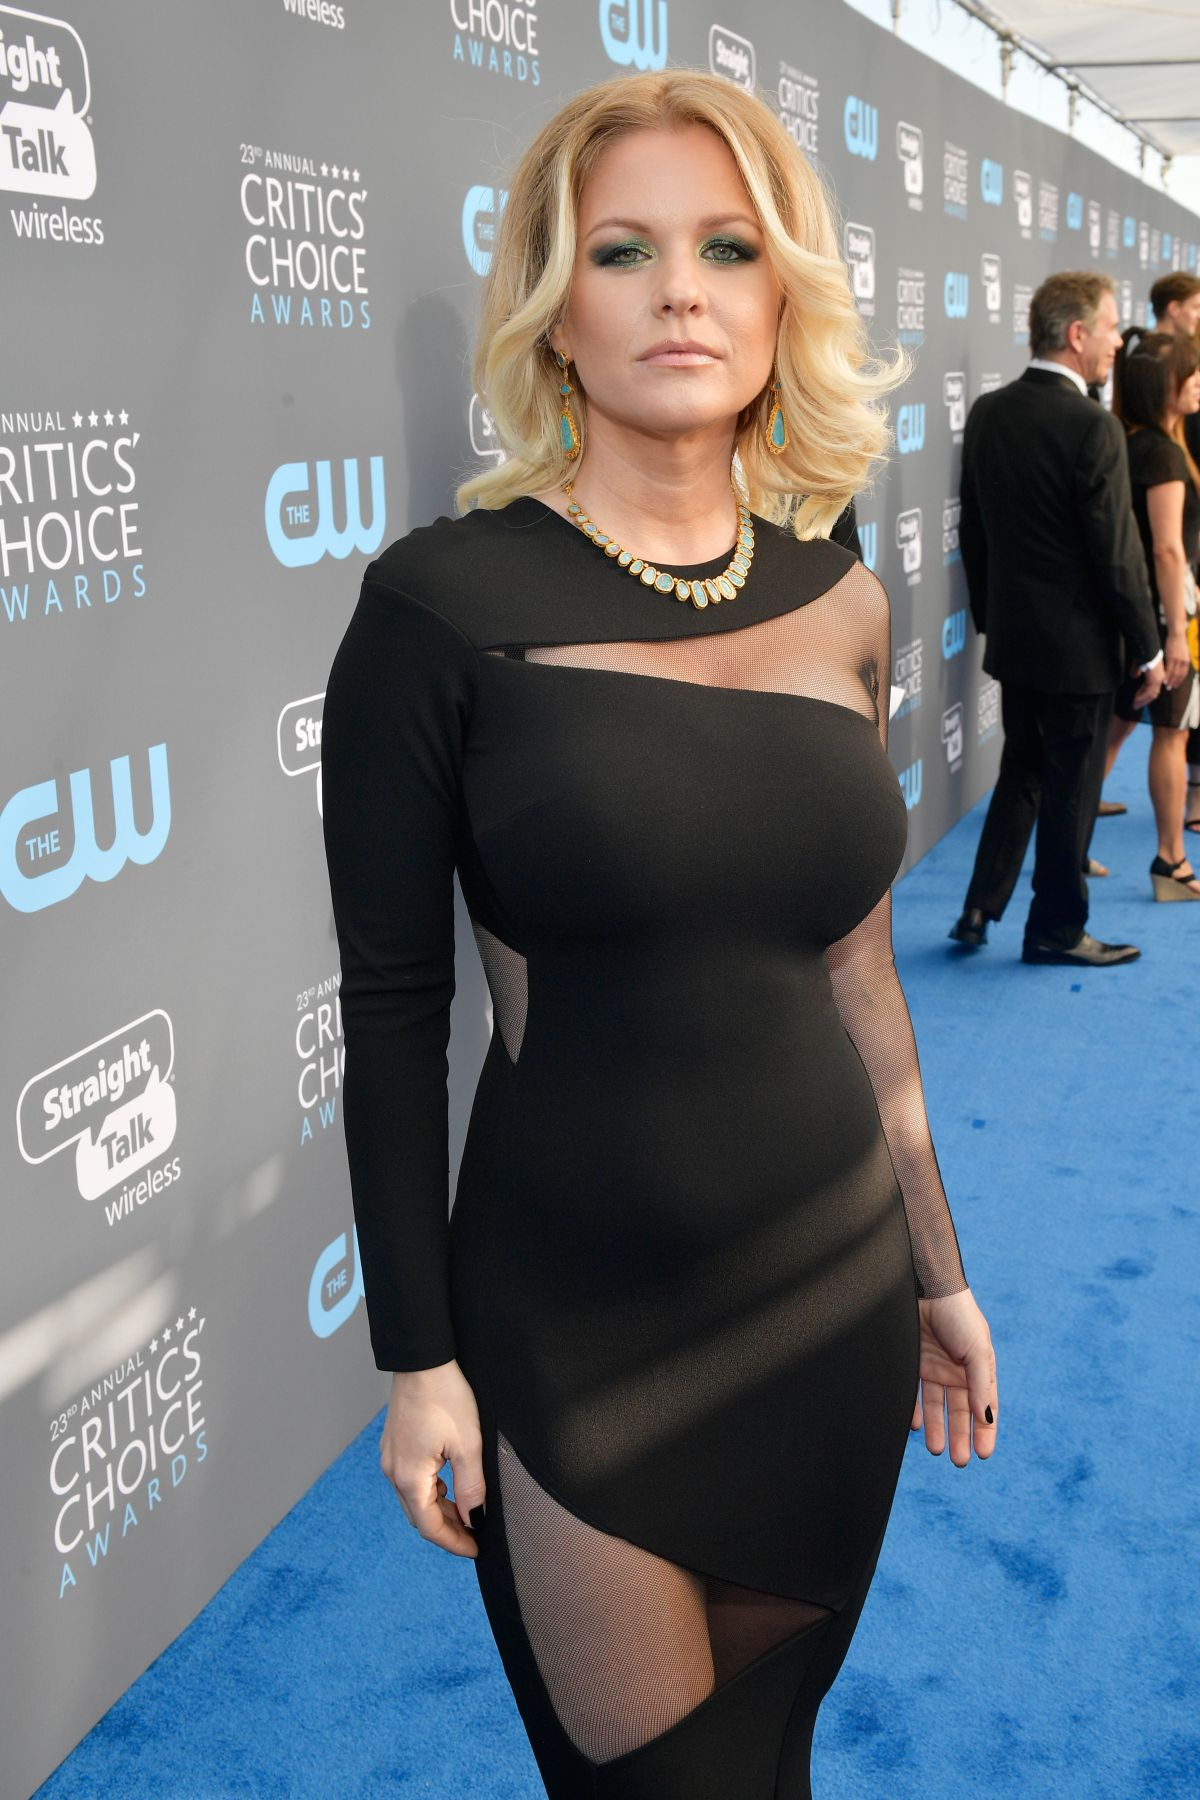 Carrie Keagan At The 23rd Annual Critics Choice Awards In